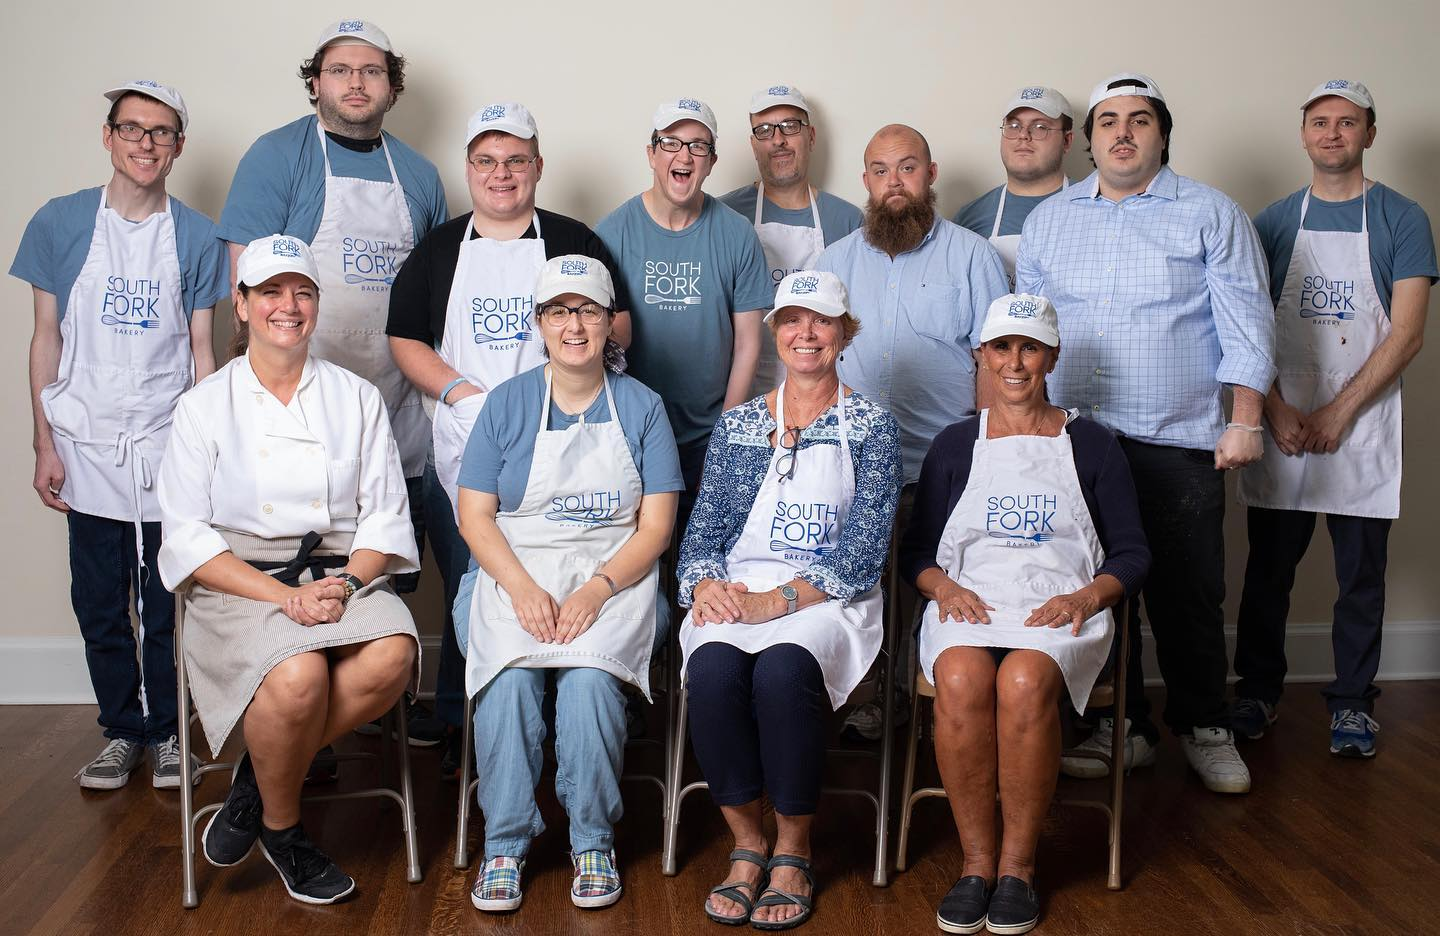 south fork bakery employees